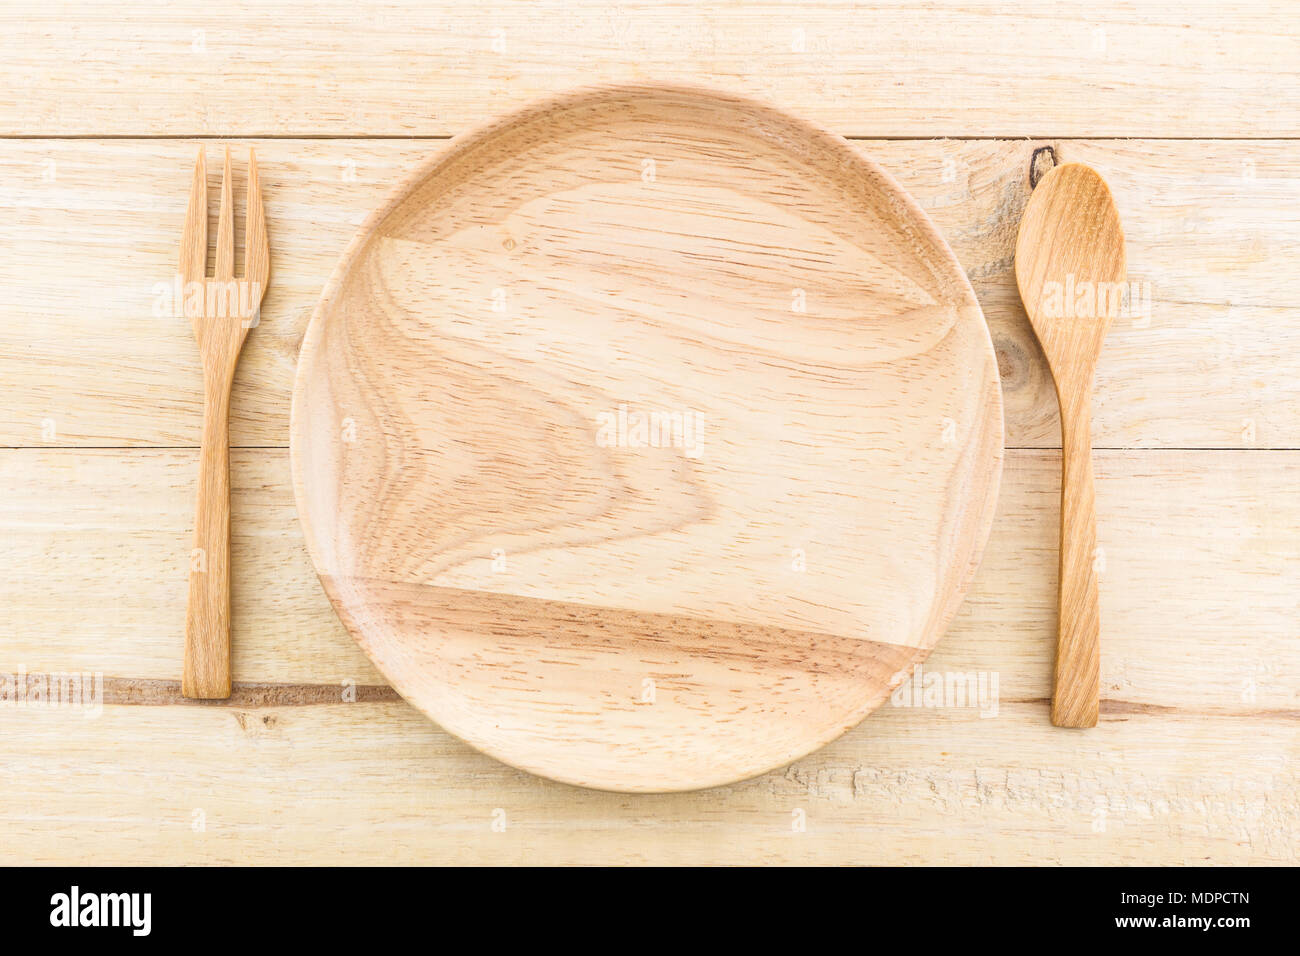 Empty Wooden Plate And Spoons Forks On Table Wood Texture Background Stock Photo Alamy